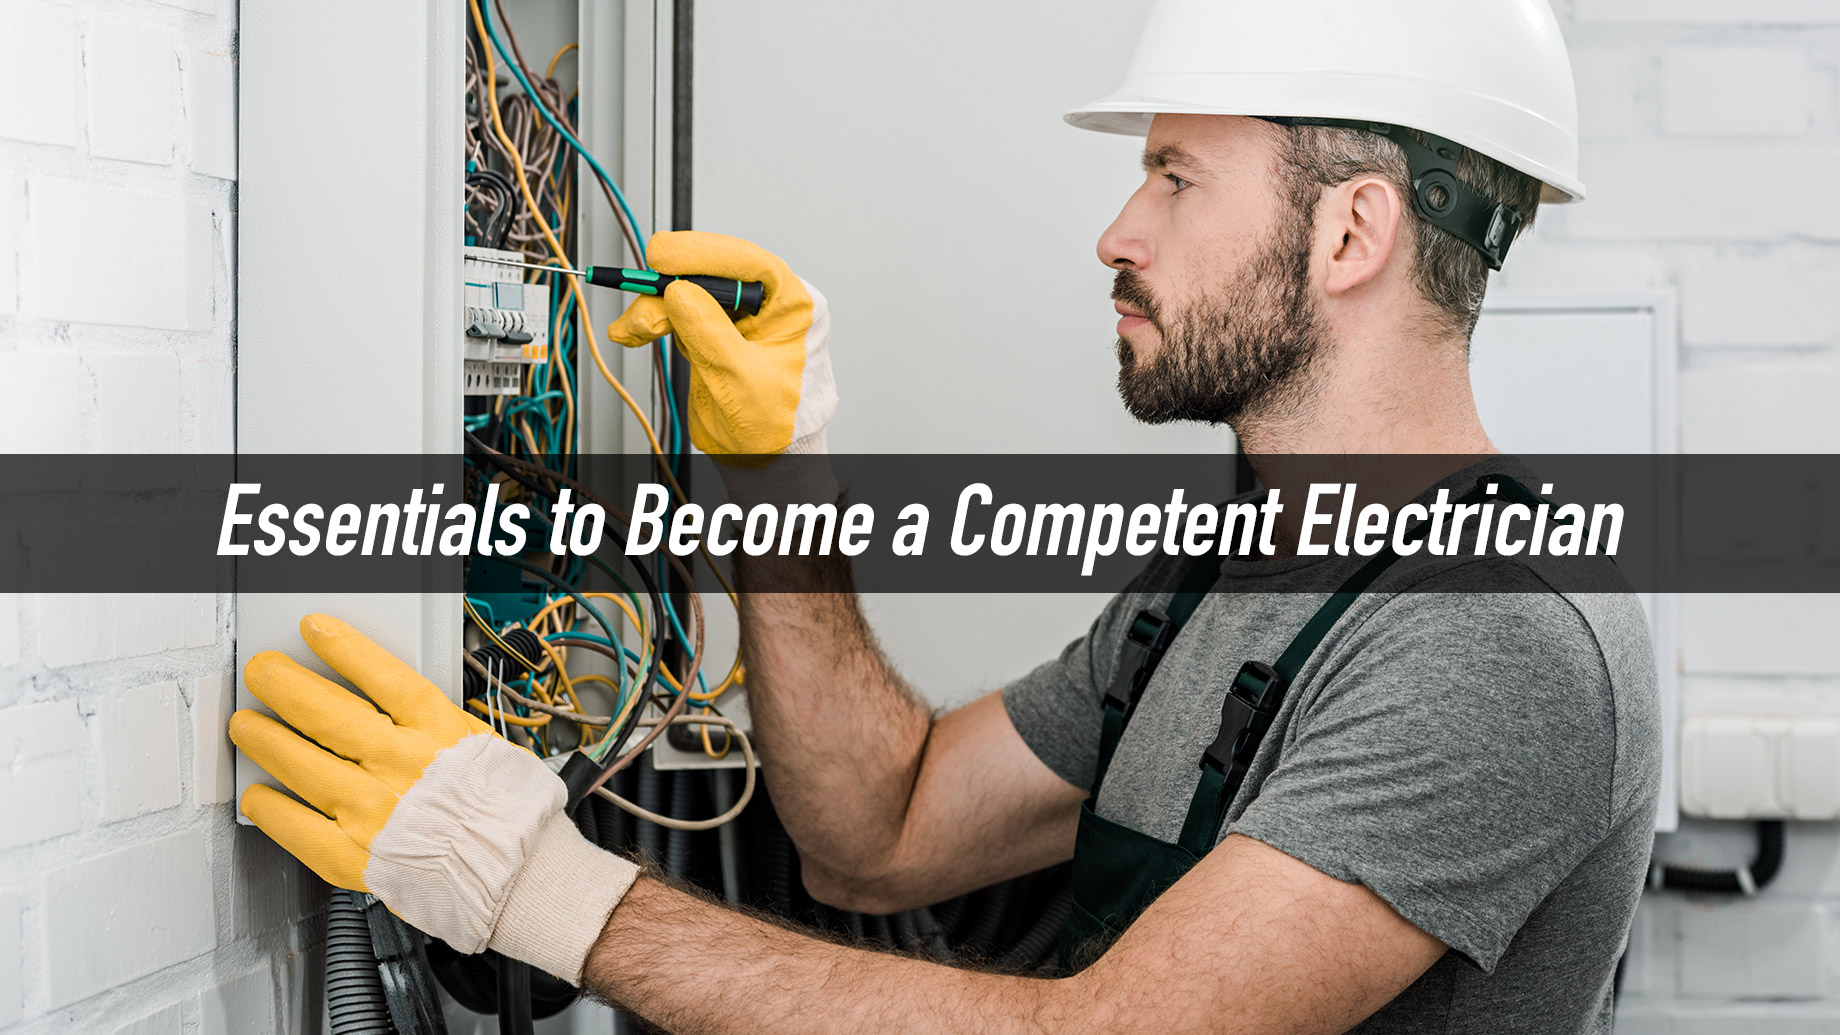 Essentials to Become a Competent Electrician